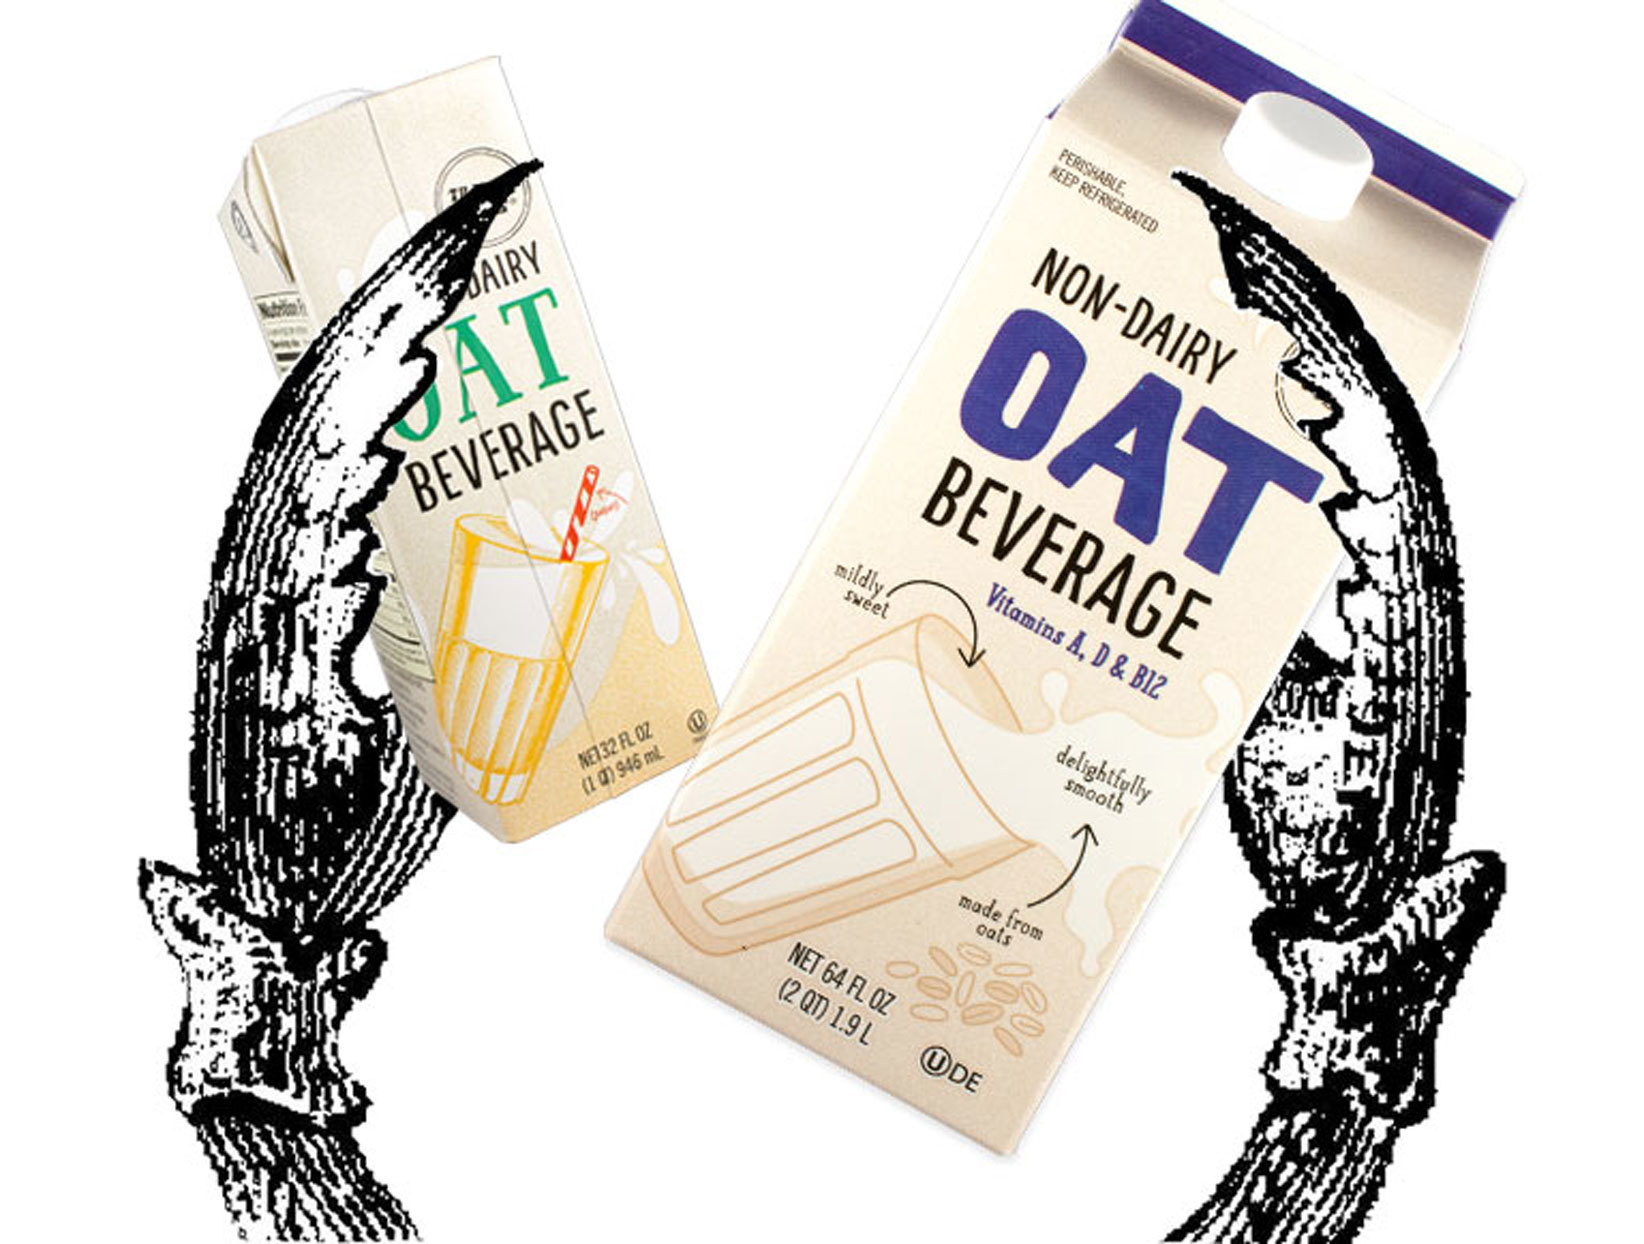 trader joe's non-dairy oat beverage